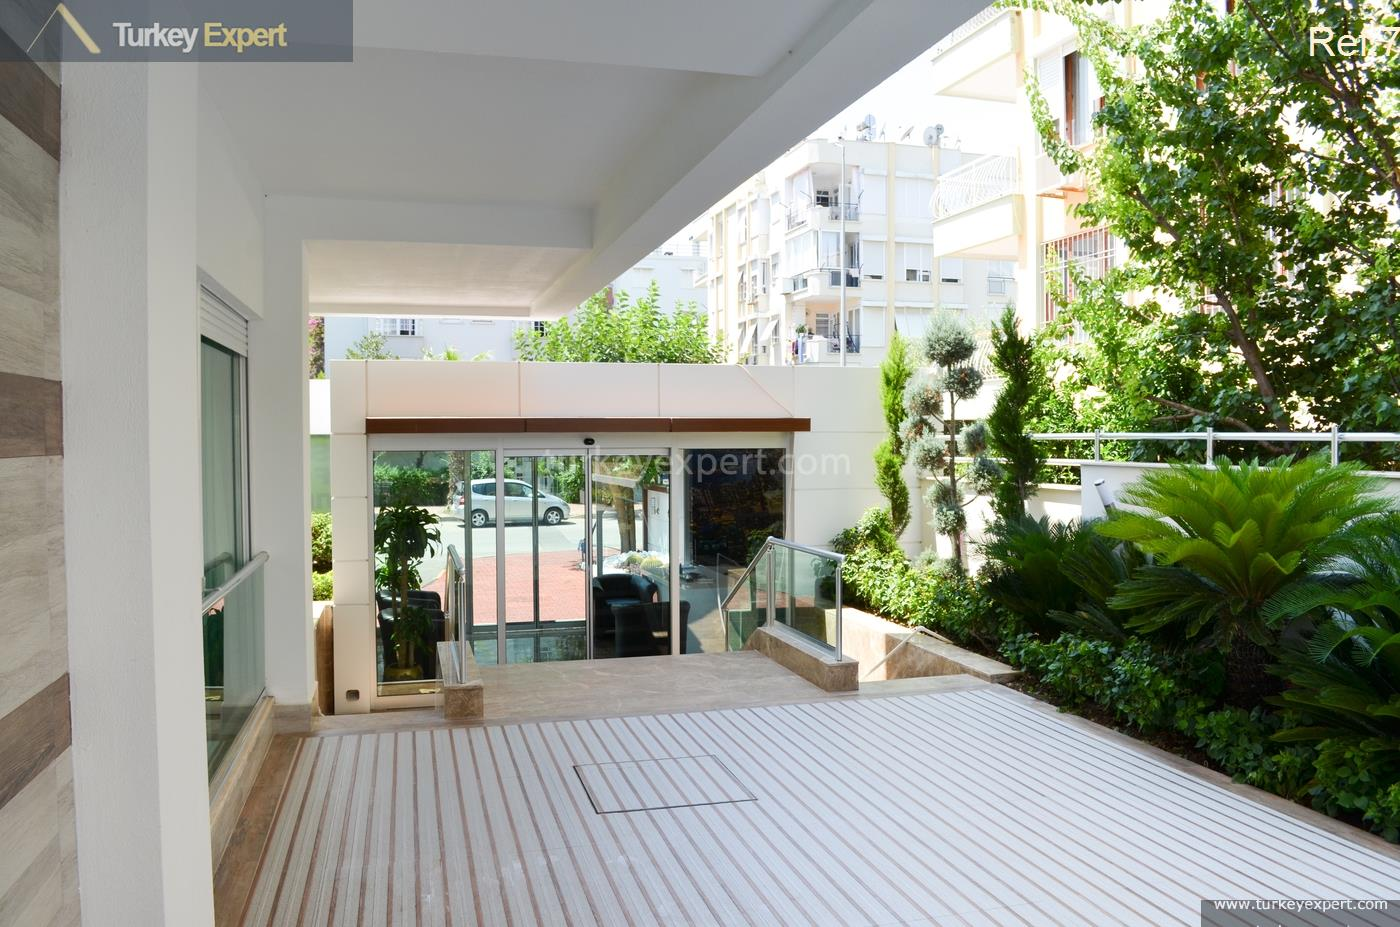 apartments for sale in antalya10.